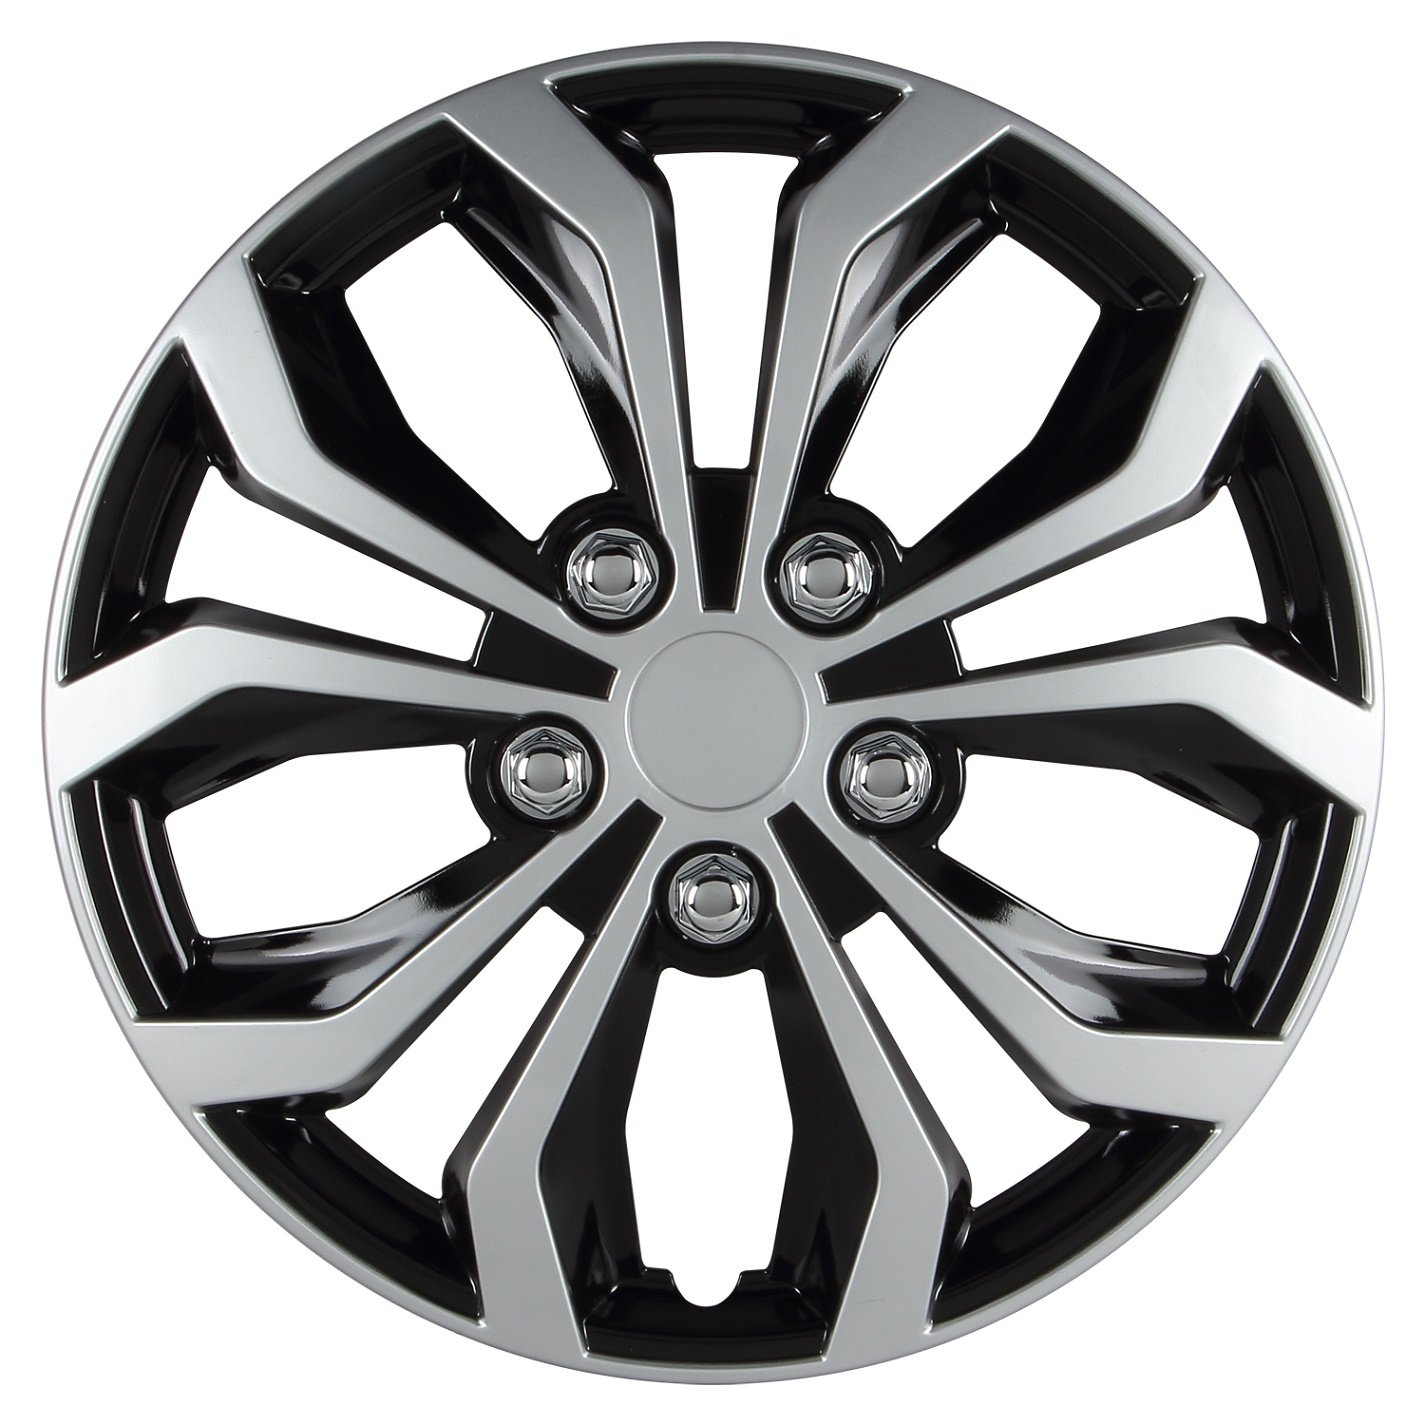 Pilot WH553-16S-BS Universal Fit Spyder Black/Silver Finish 16 Inch Wheel Covers - Set of 4: Amazon.in: Car & Motorbike